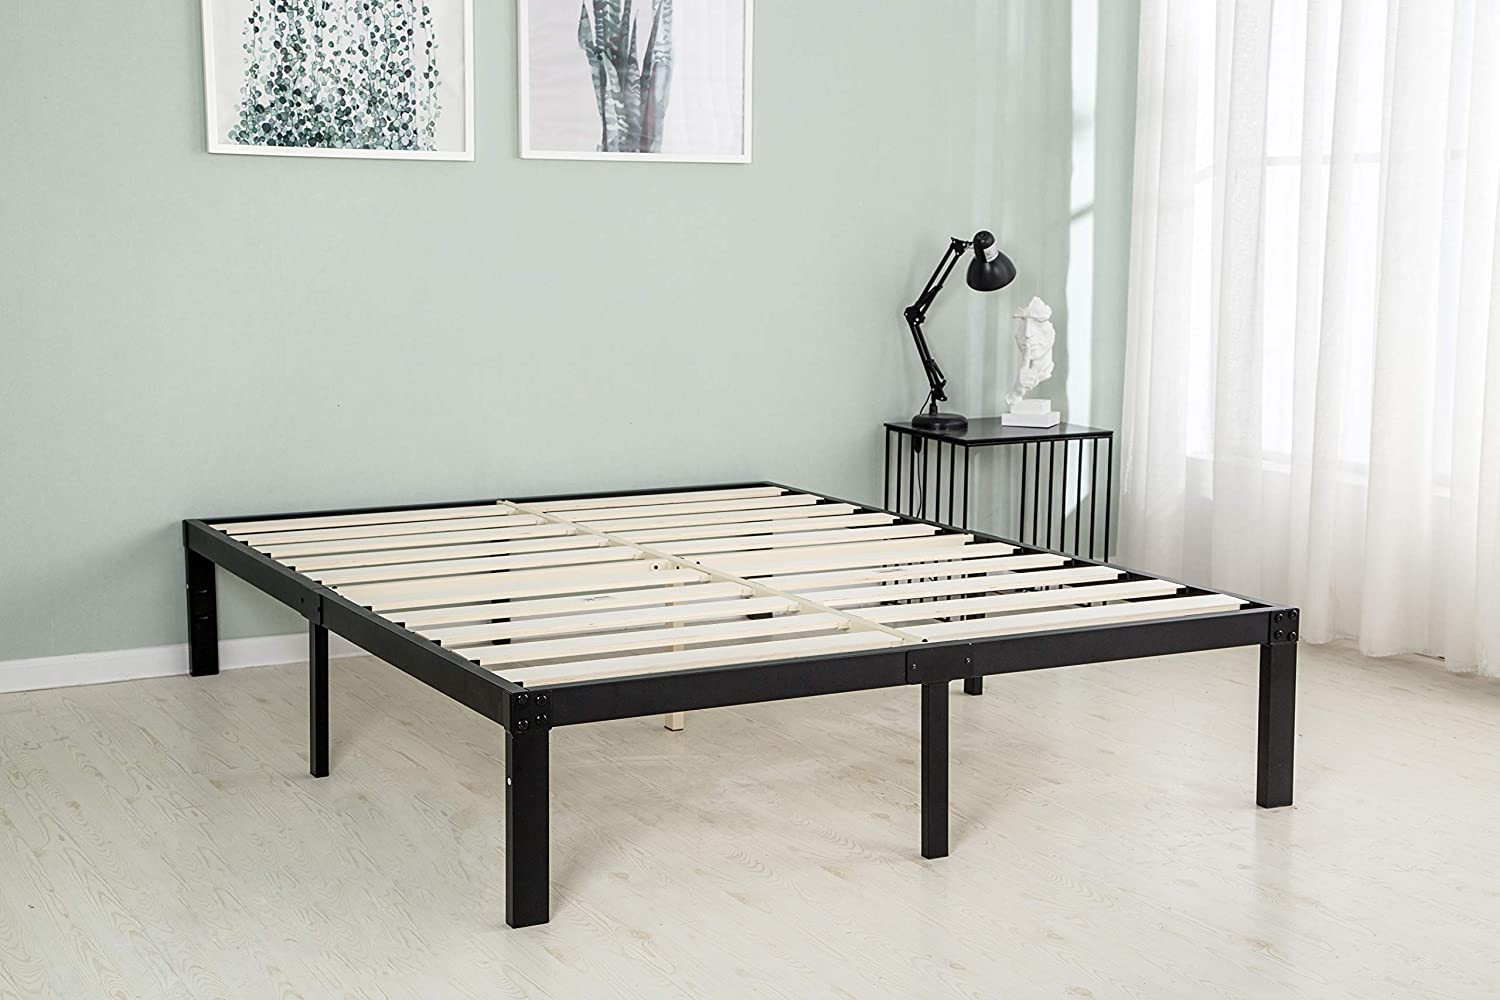 zizin Metal Bed Frame Queen with Wood Slats Heavy Duty 3500lbs Mattress Foundation No Box Spring Needed Noise Free 14 Inch Platform Beds Base Reinforced Wooden-Queen